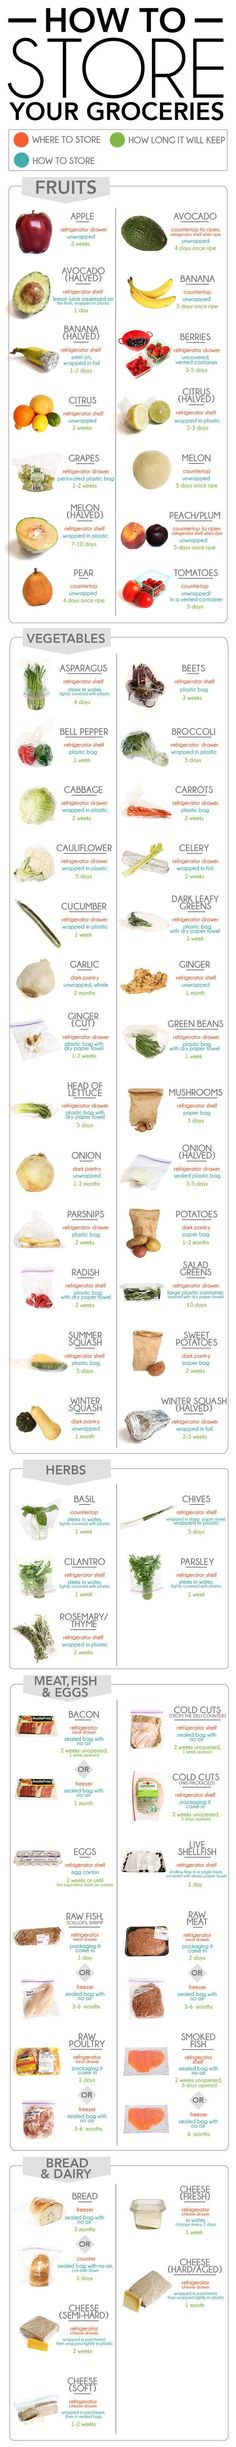 The Definitive Guide to Storing Your Groceries So They Last